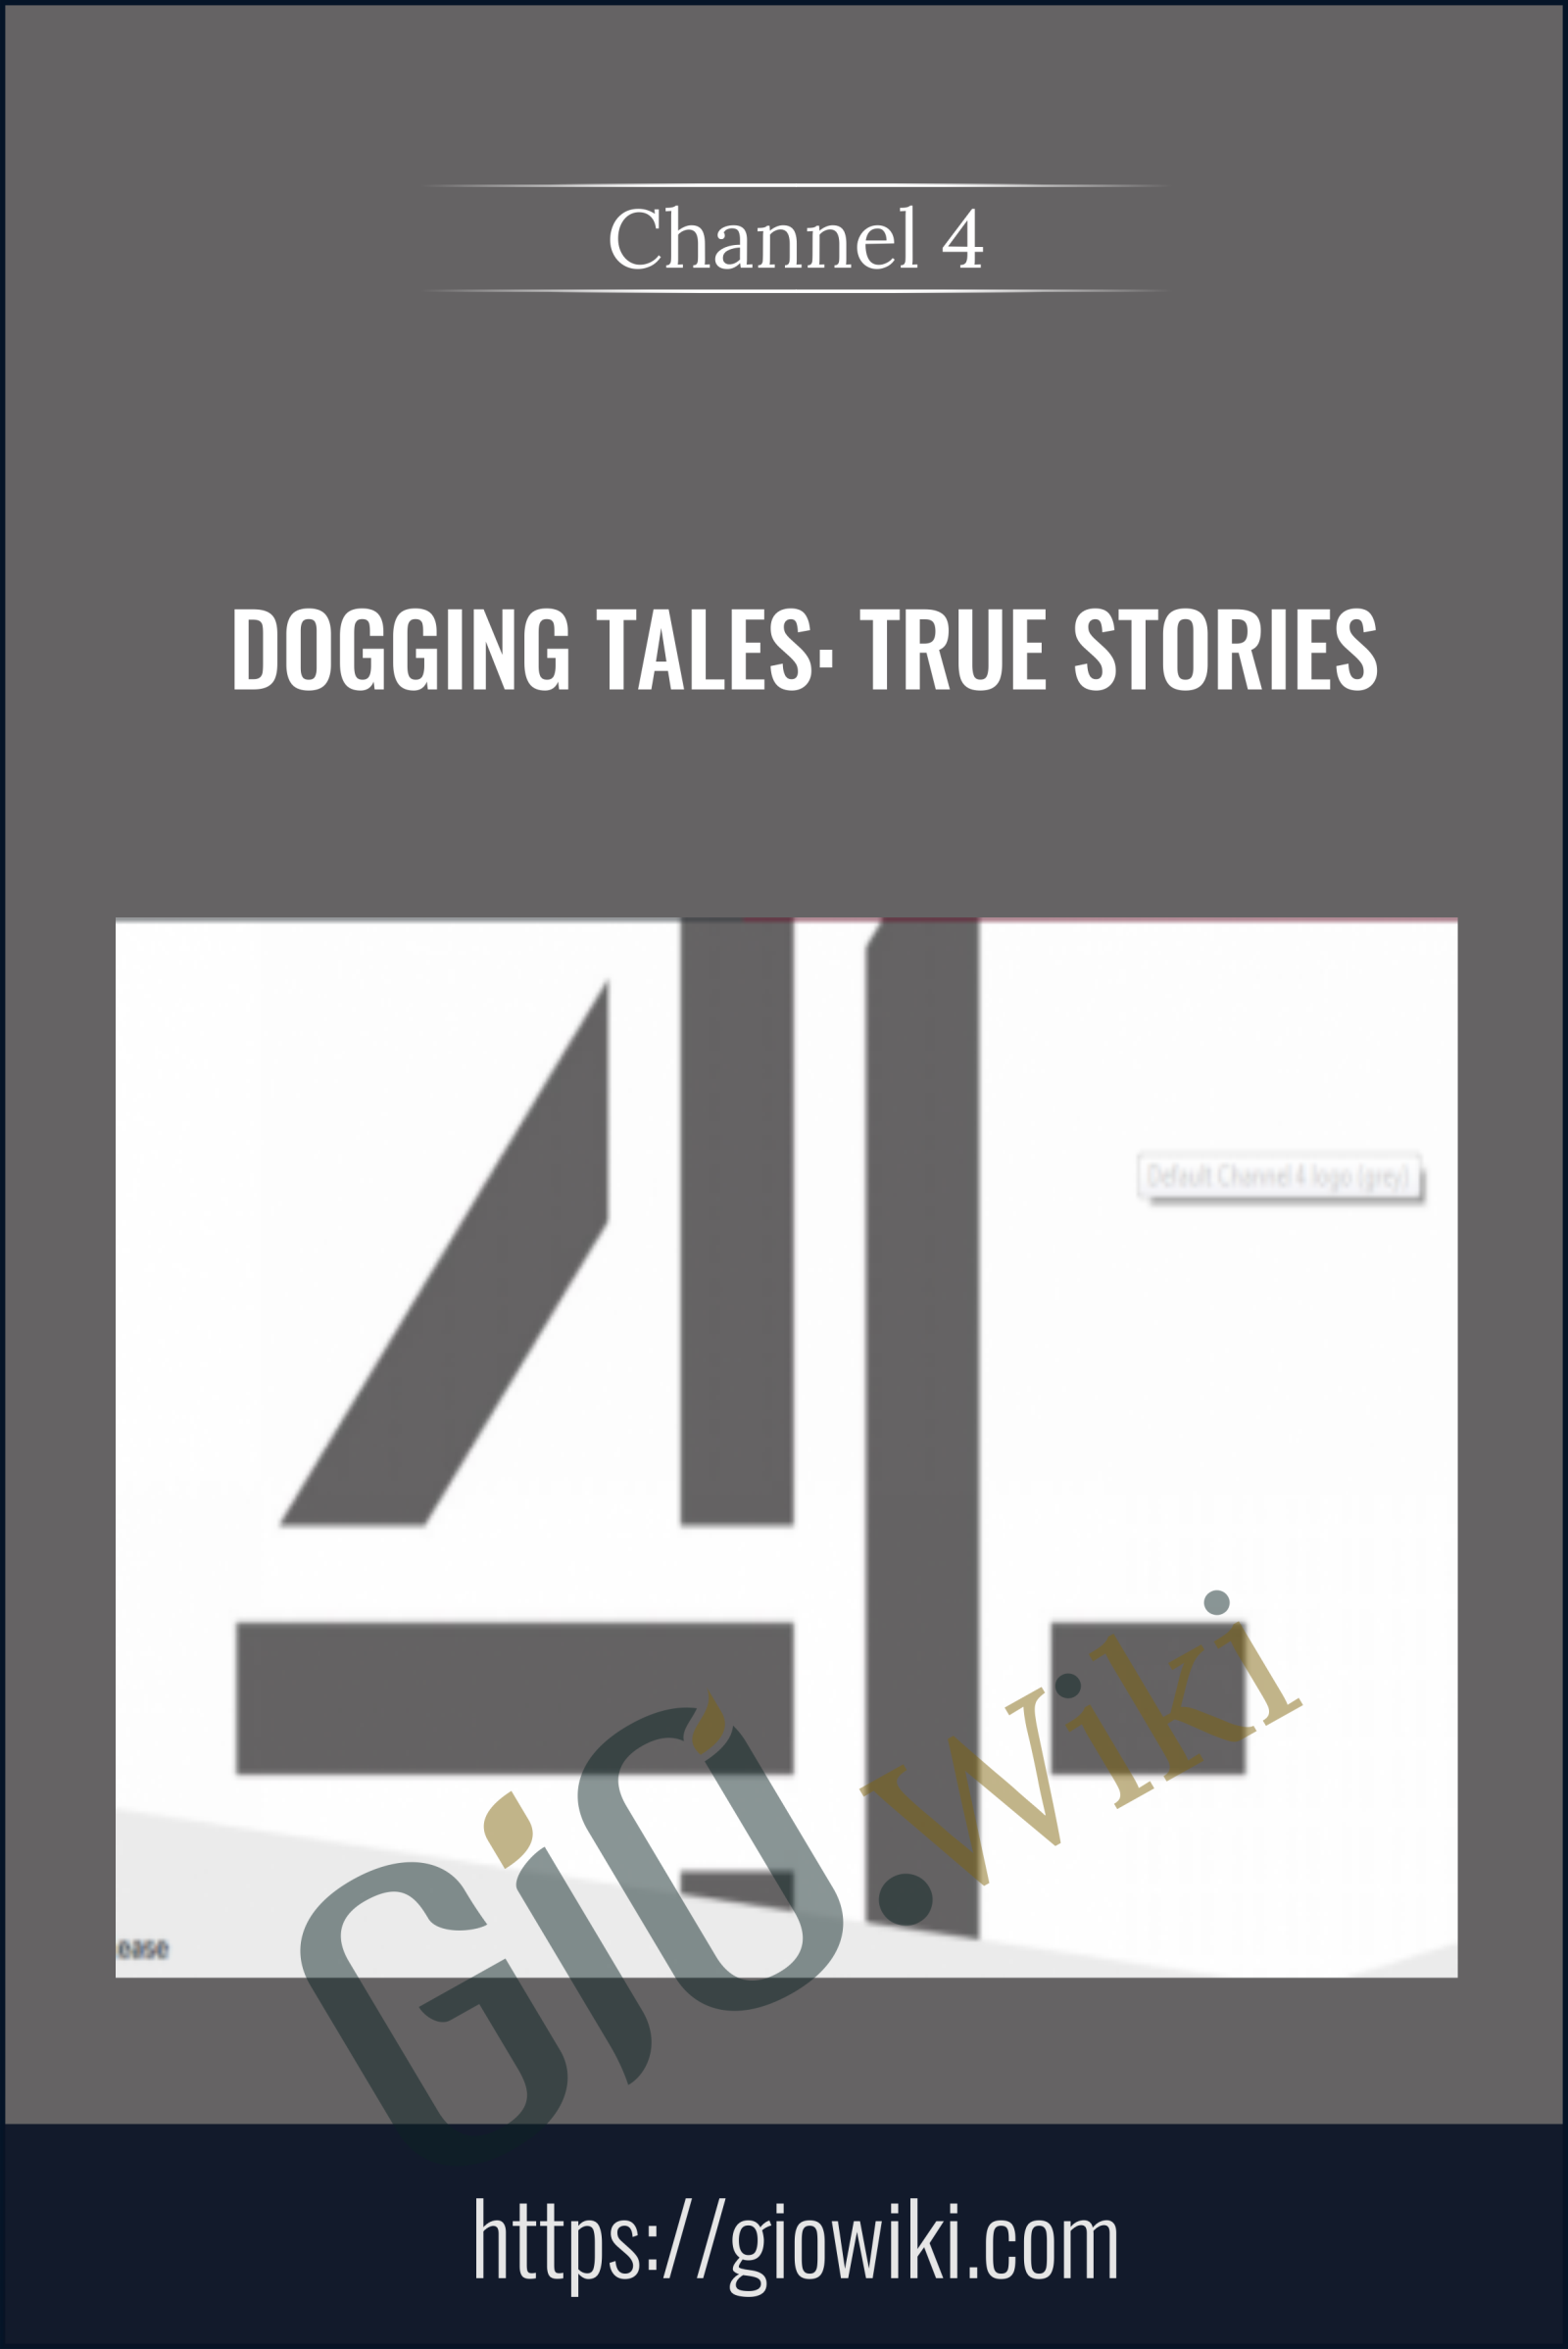 Dogging Tales: True Stories - Channel 4